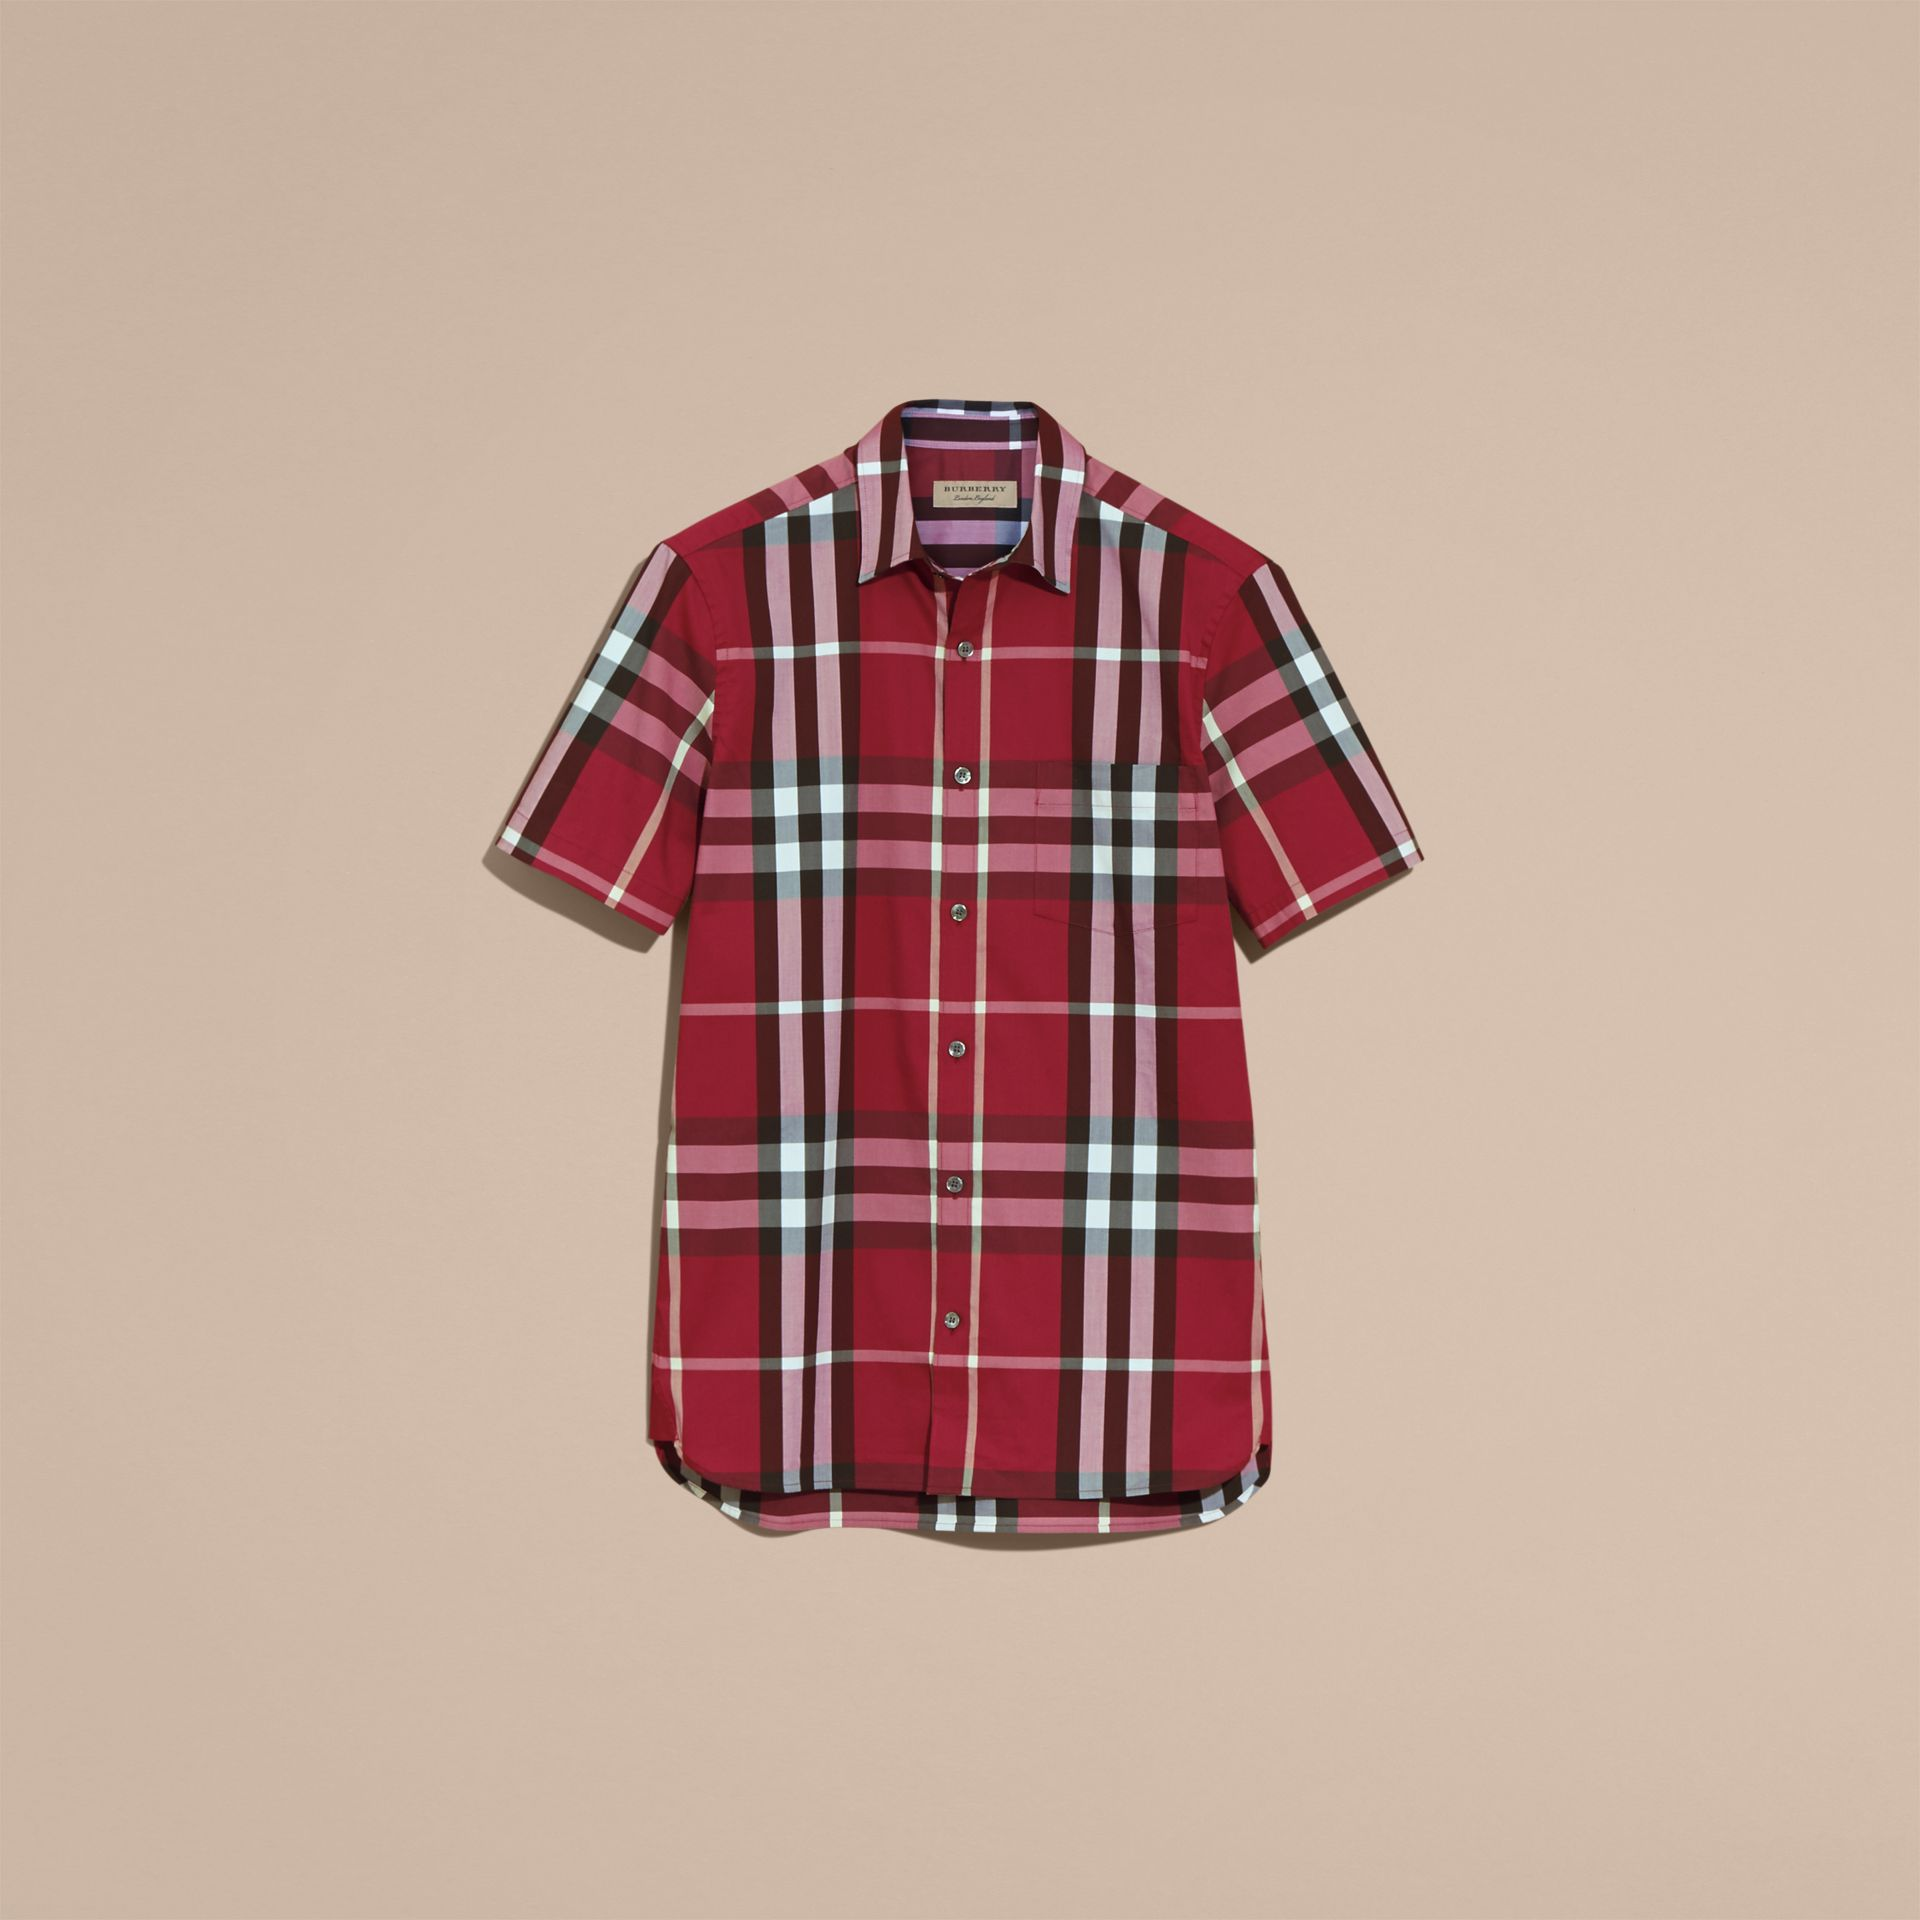 Short-sleeved Check Stretch Cotton Shirt in Plum Pink - Men | Burberry - gallery image 4